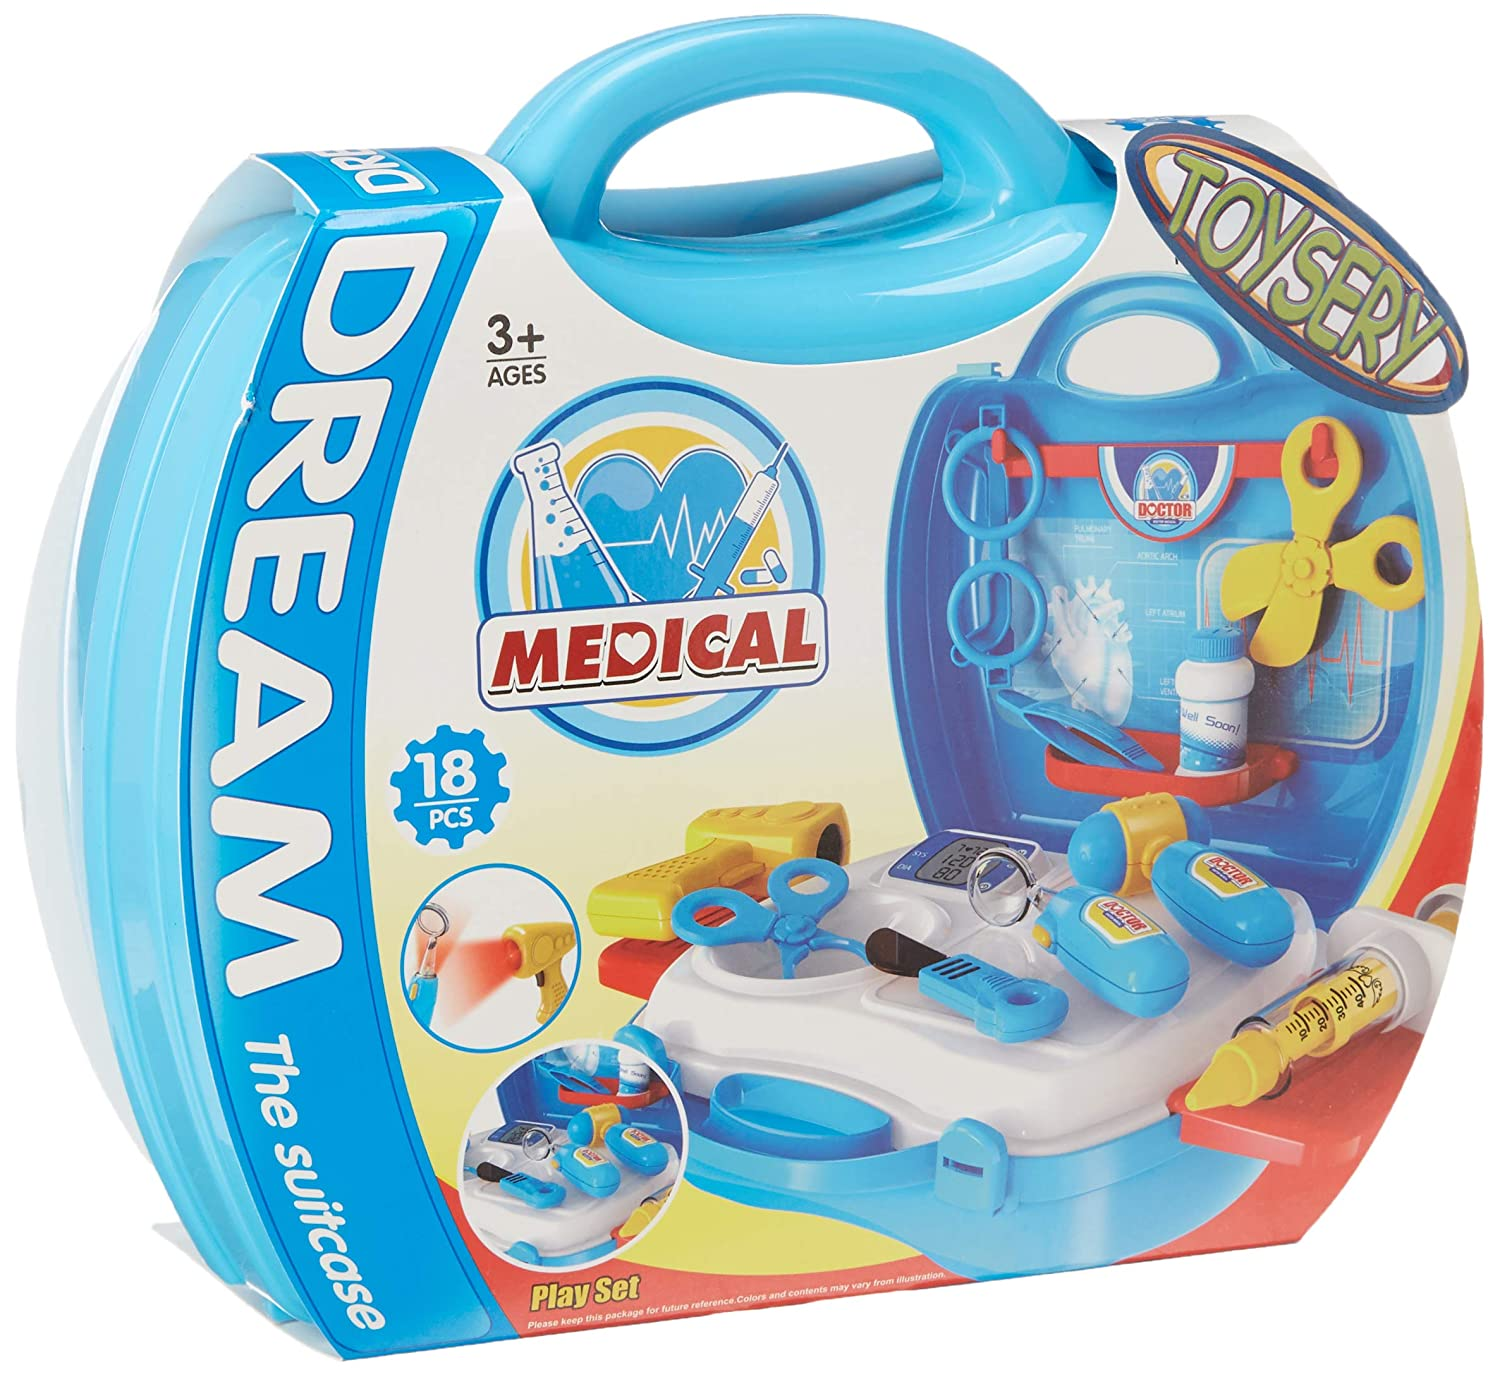 Top 9 Best Toy Doctor Kits Reviews in 2020 8